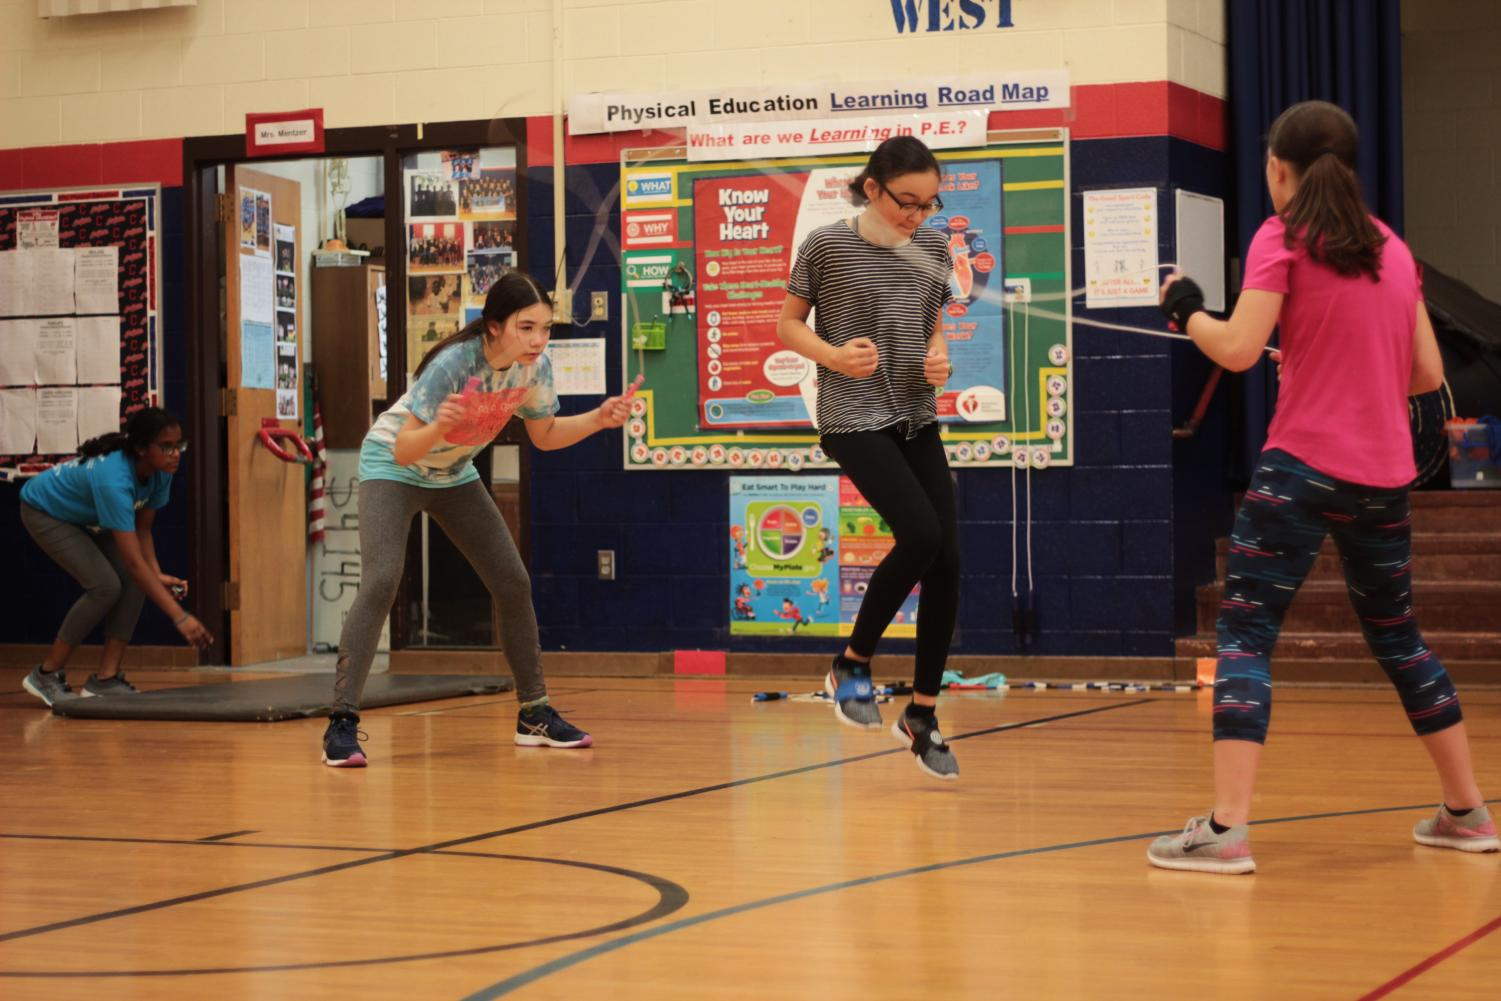 OB Jump, a competitive jump rope team made up of 16 Prospect Elementary School and Eastwood Elementary students, is preparing to compete at Nationals in Raleigh, NC, this June. However, Coach Jenny Mentzer values more than just winning — she teaches her athletes life skills like confidence and leadership.